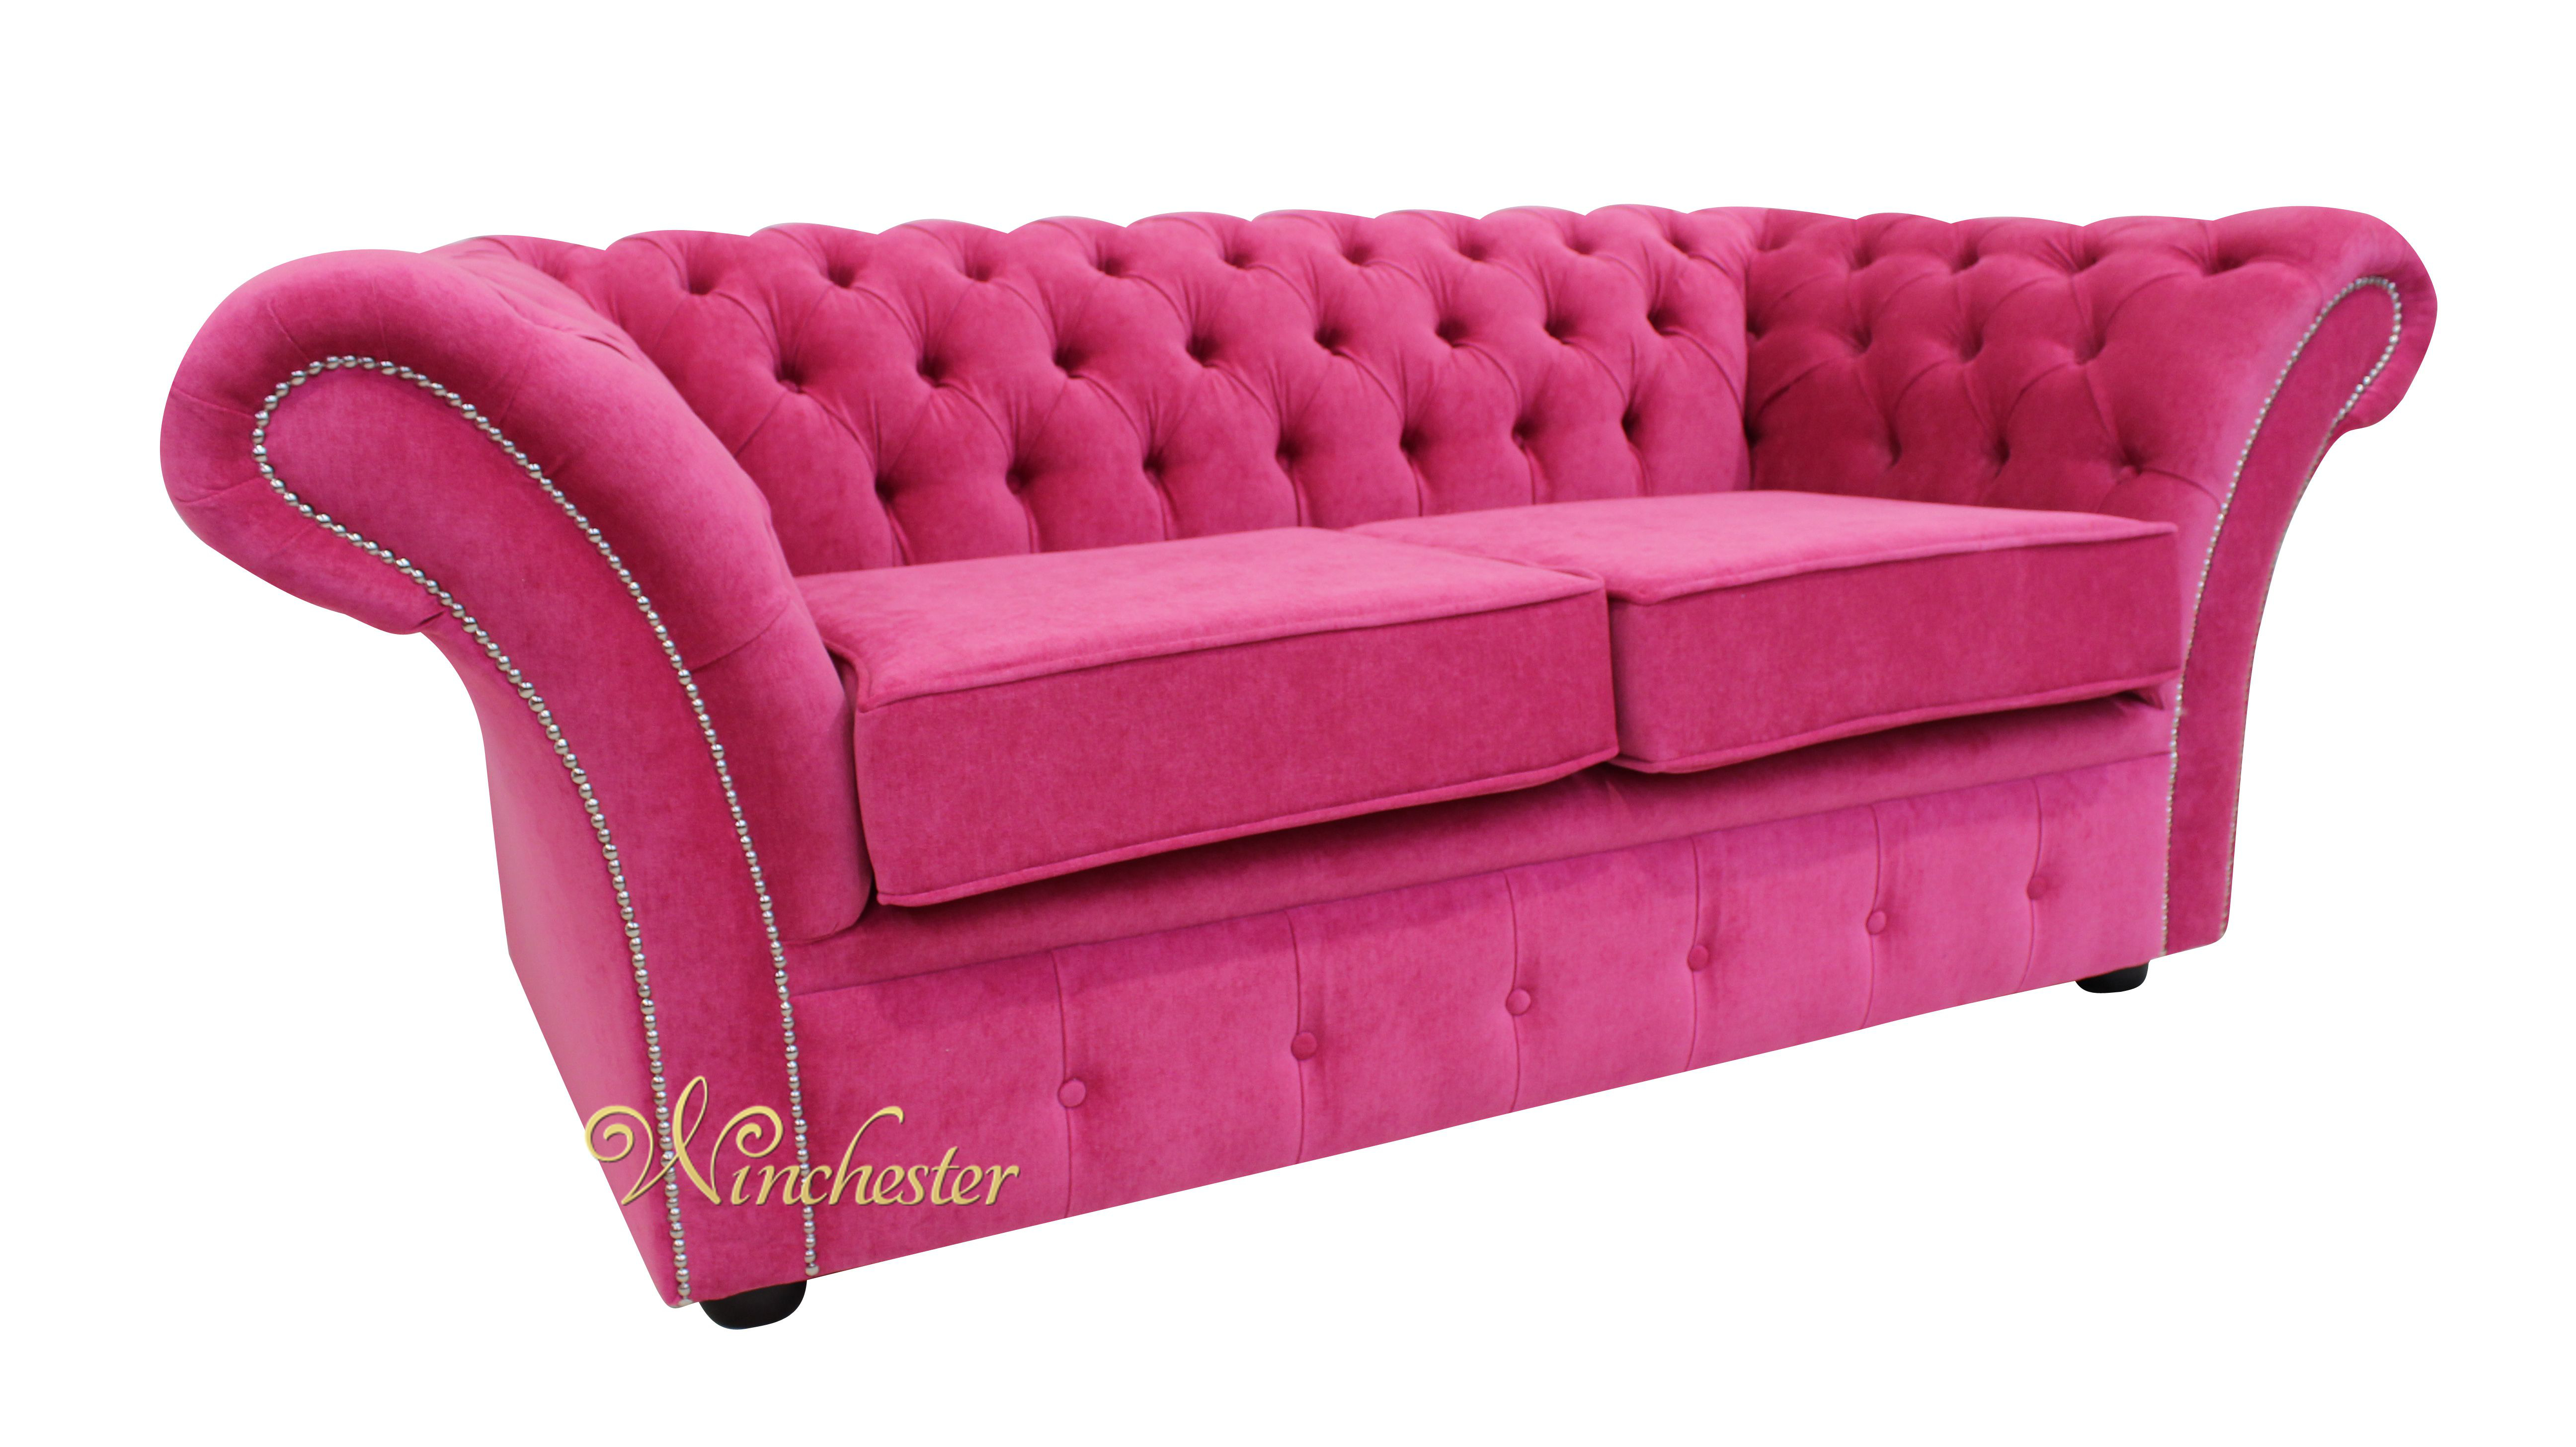 Chesterfield Balmoral 2 Seater Sofa Settee Danza Fuchsia  : chesterfield balmora danza fuchsia pink wc from www.winchesterleather.com size 5184 x 2912 jpeg 2719kB